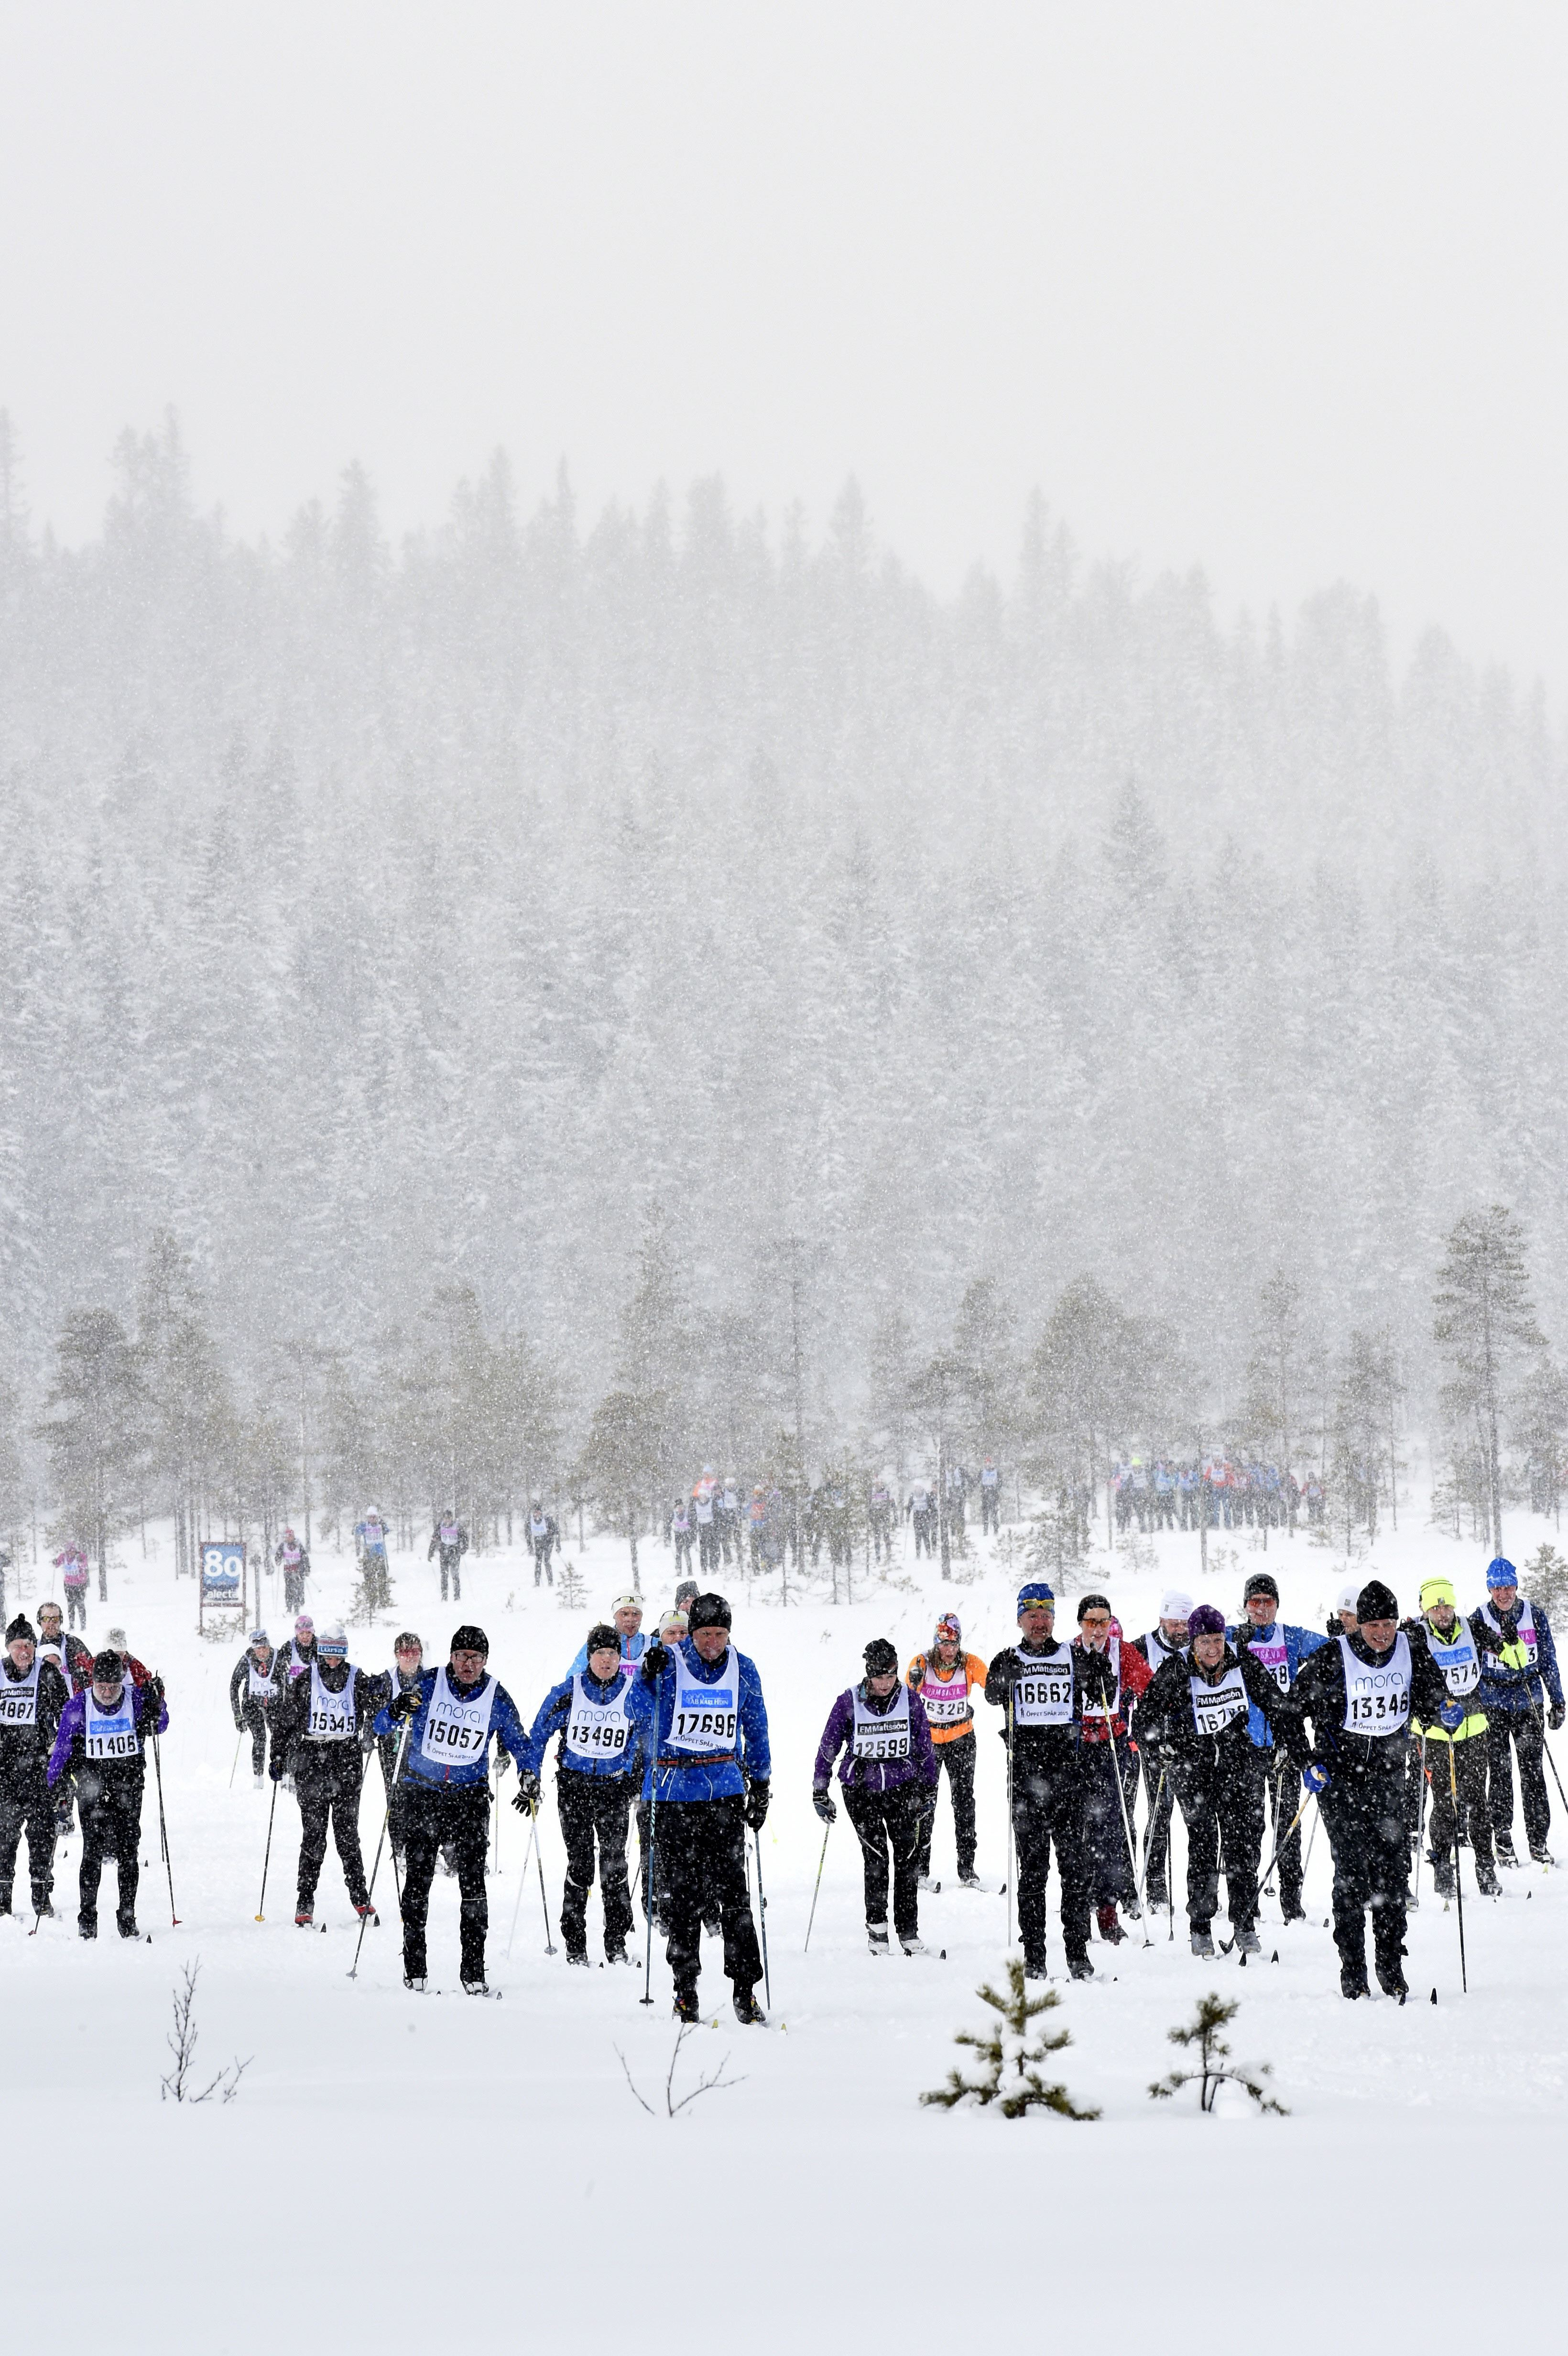 Öppet Spår, Vasaloppet - Cross country ski race